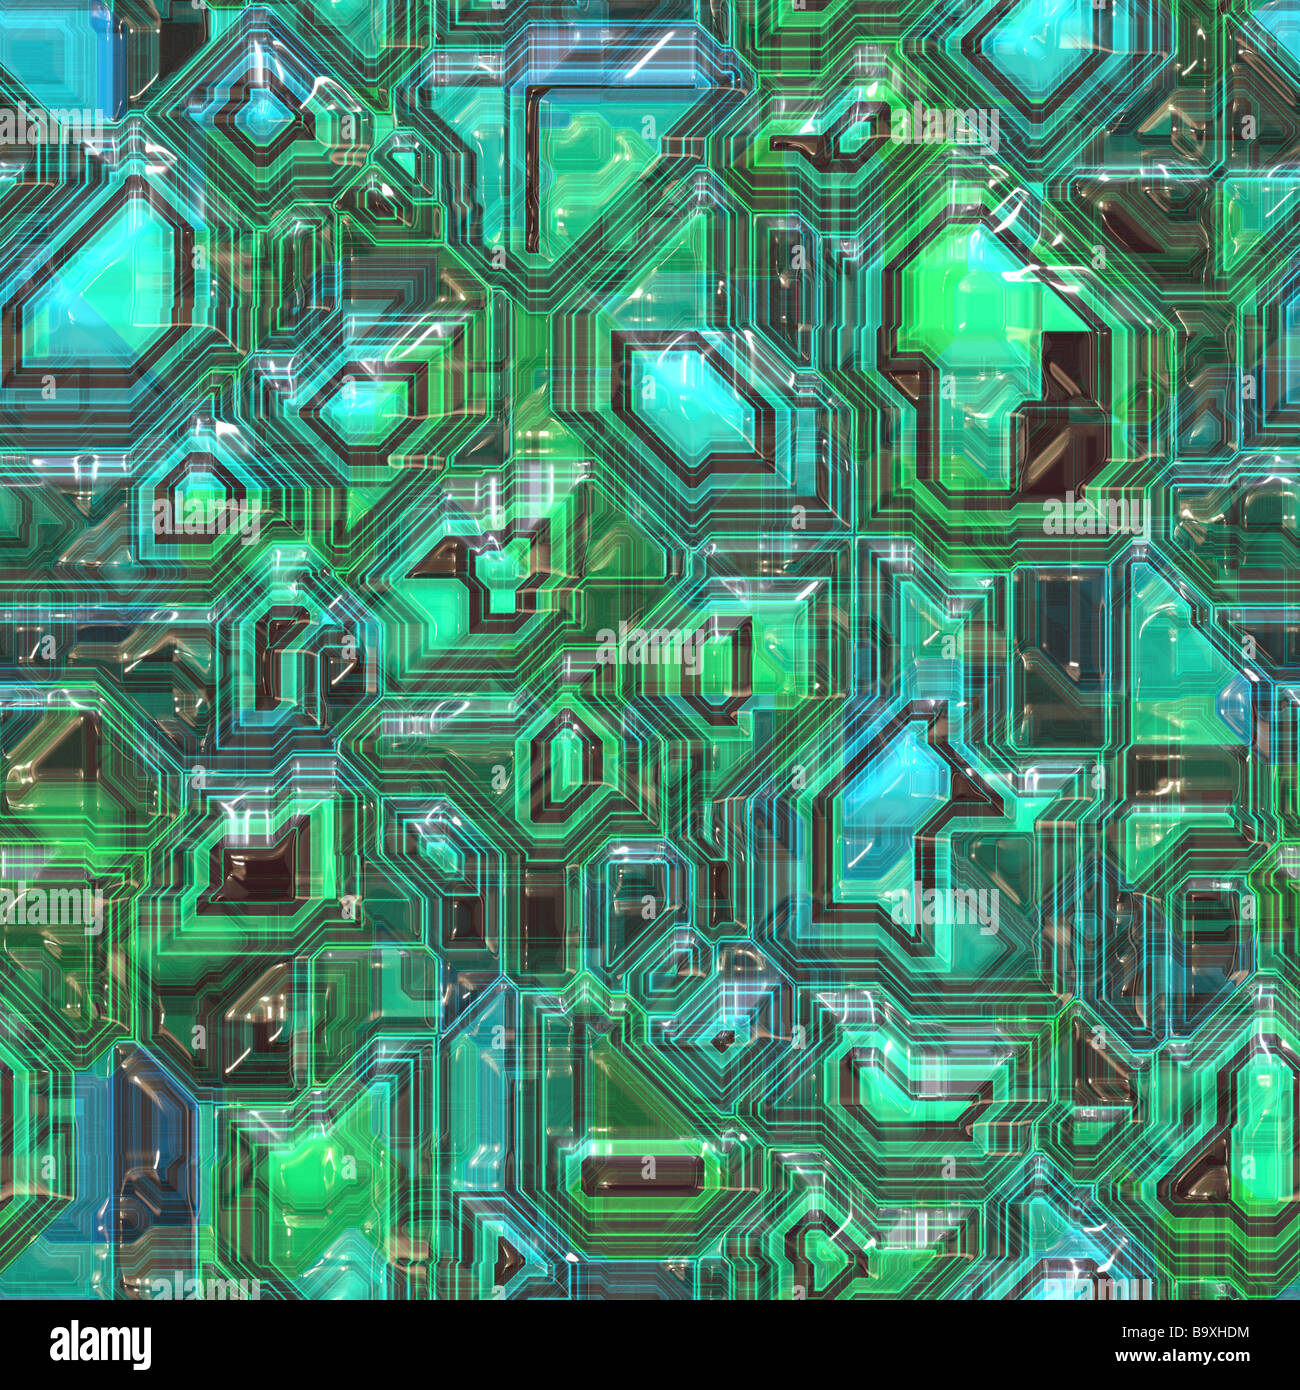 Circuitry Background Circuit Diagram Wallpaper Abstract High Tech Illustration Stock